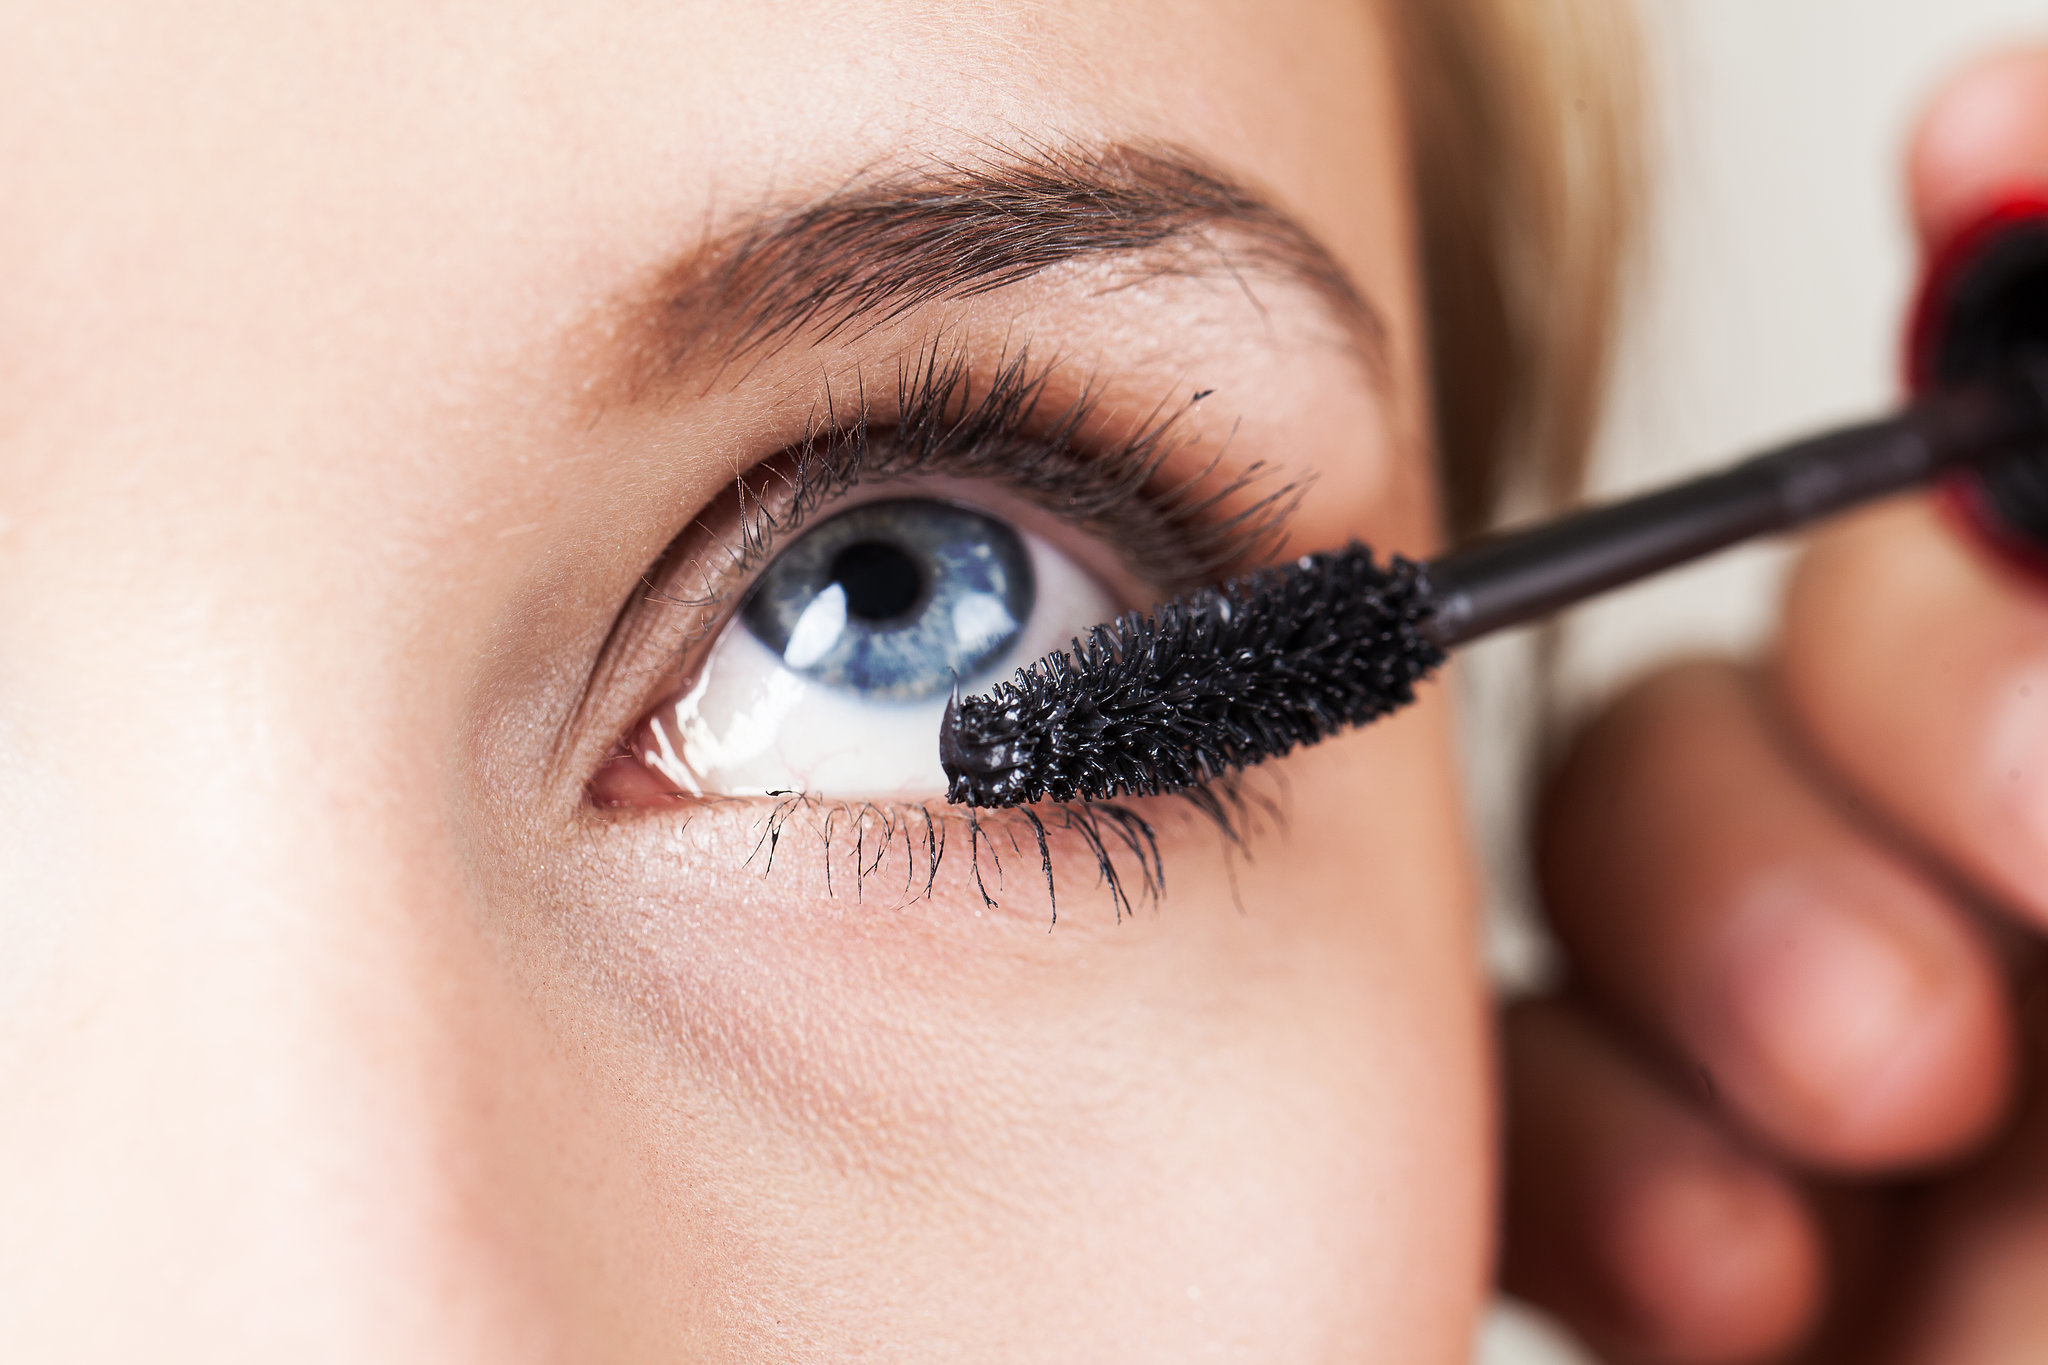 20 Makeup Tips for Contact Lens Wearers advise